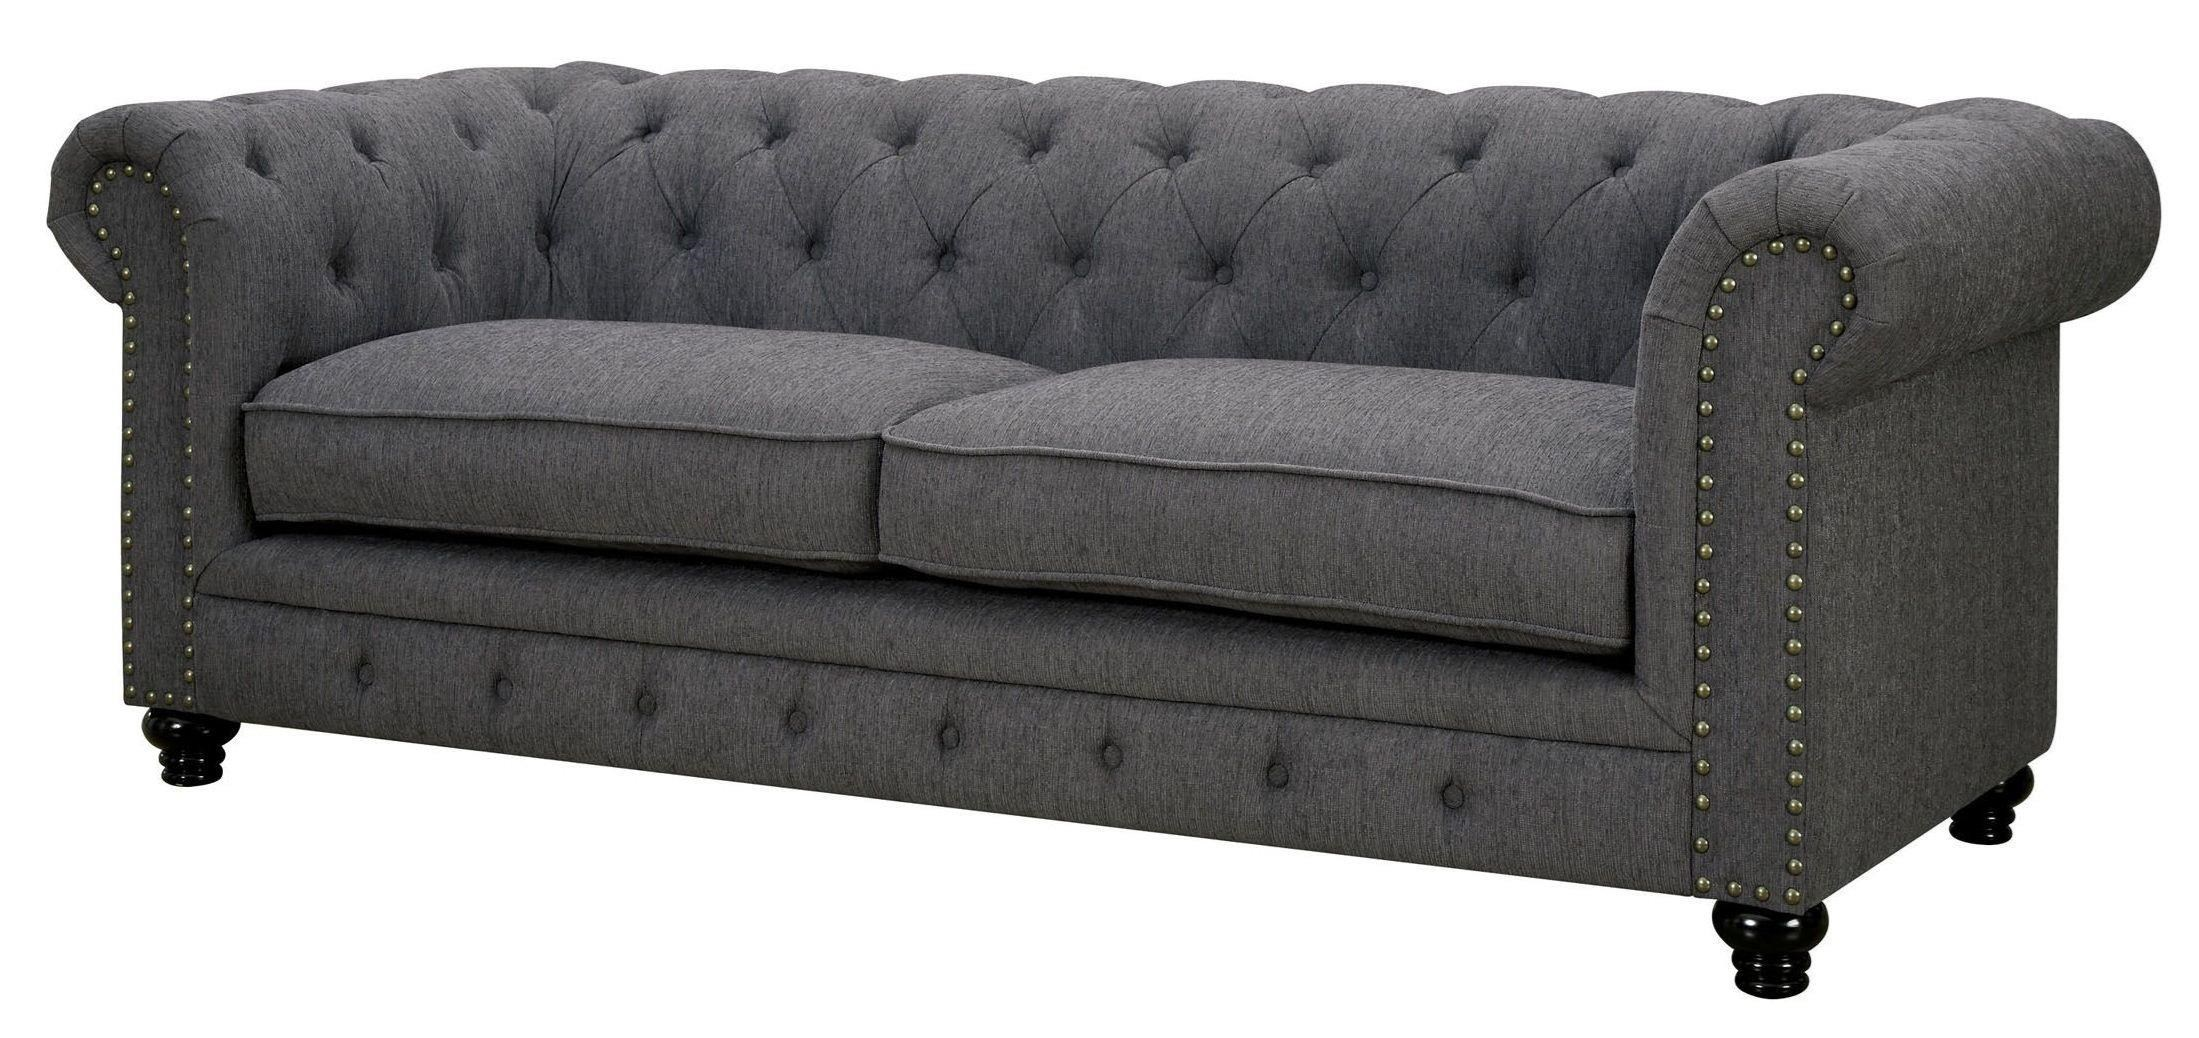 Furniture of America / Import Direct Stanford Sofa - Item Number: CM6269SF